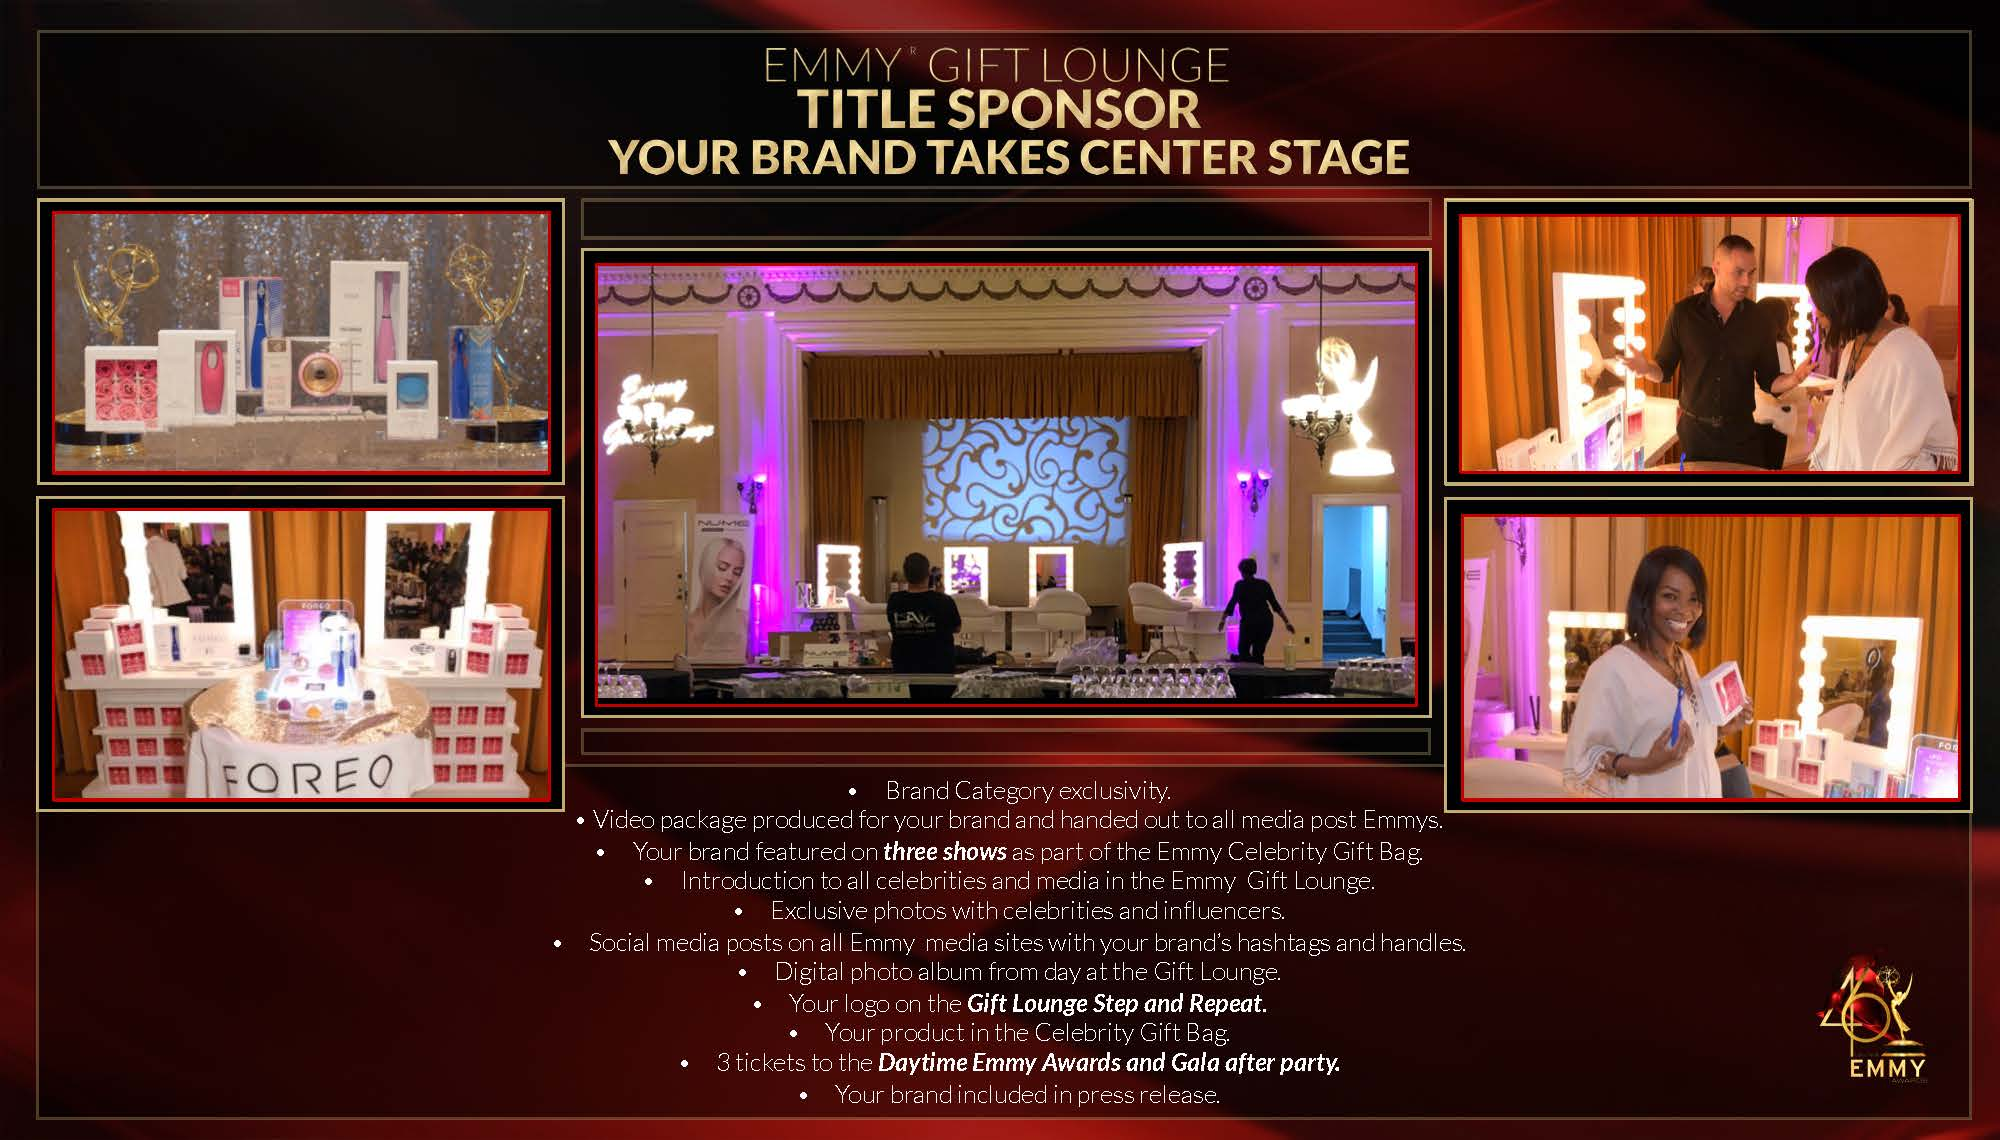 46TH EMMYS AWARDS DECK - GIFT LOUNGE PAGES ONLY_Page_2.jpg